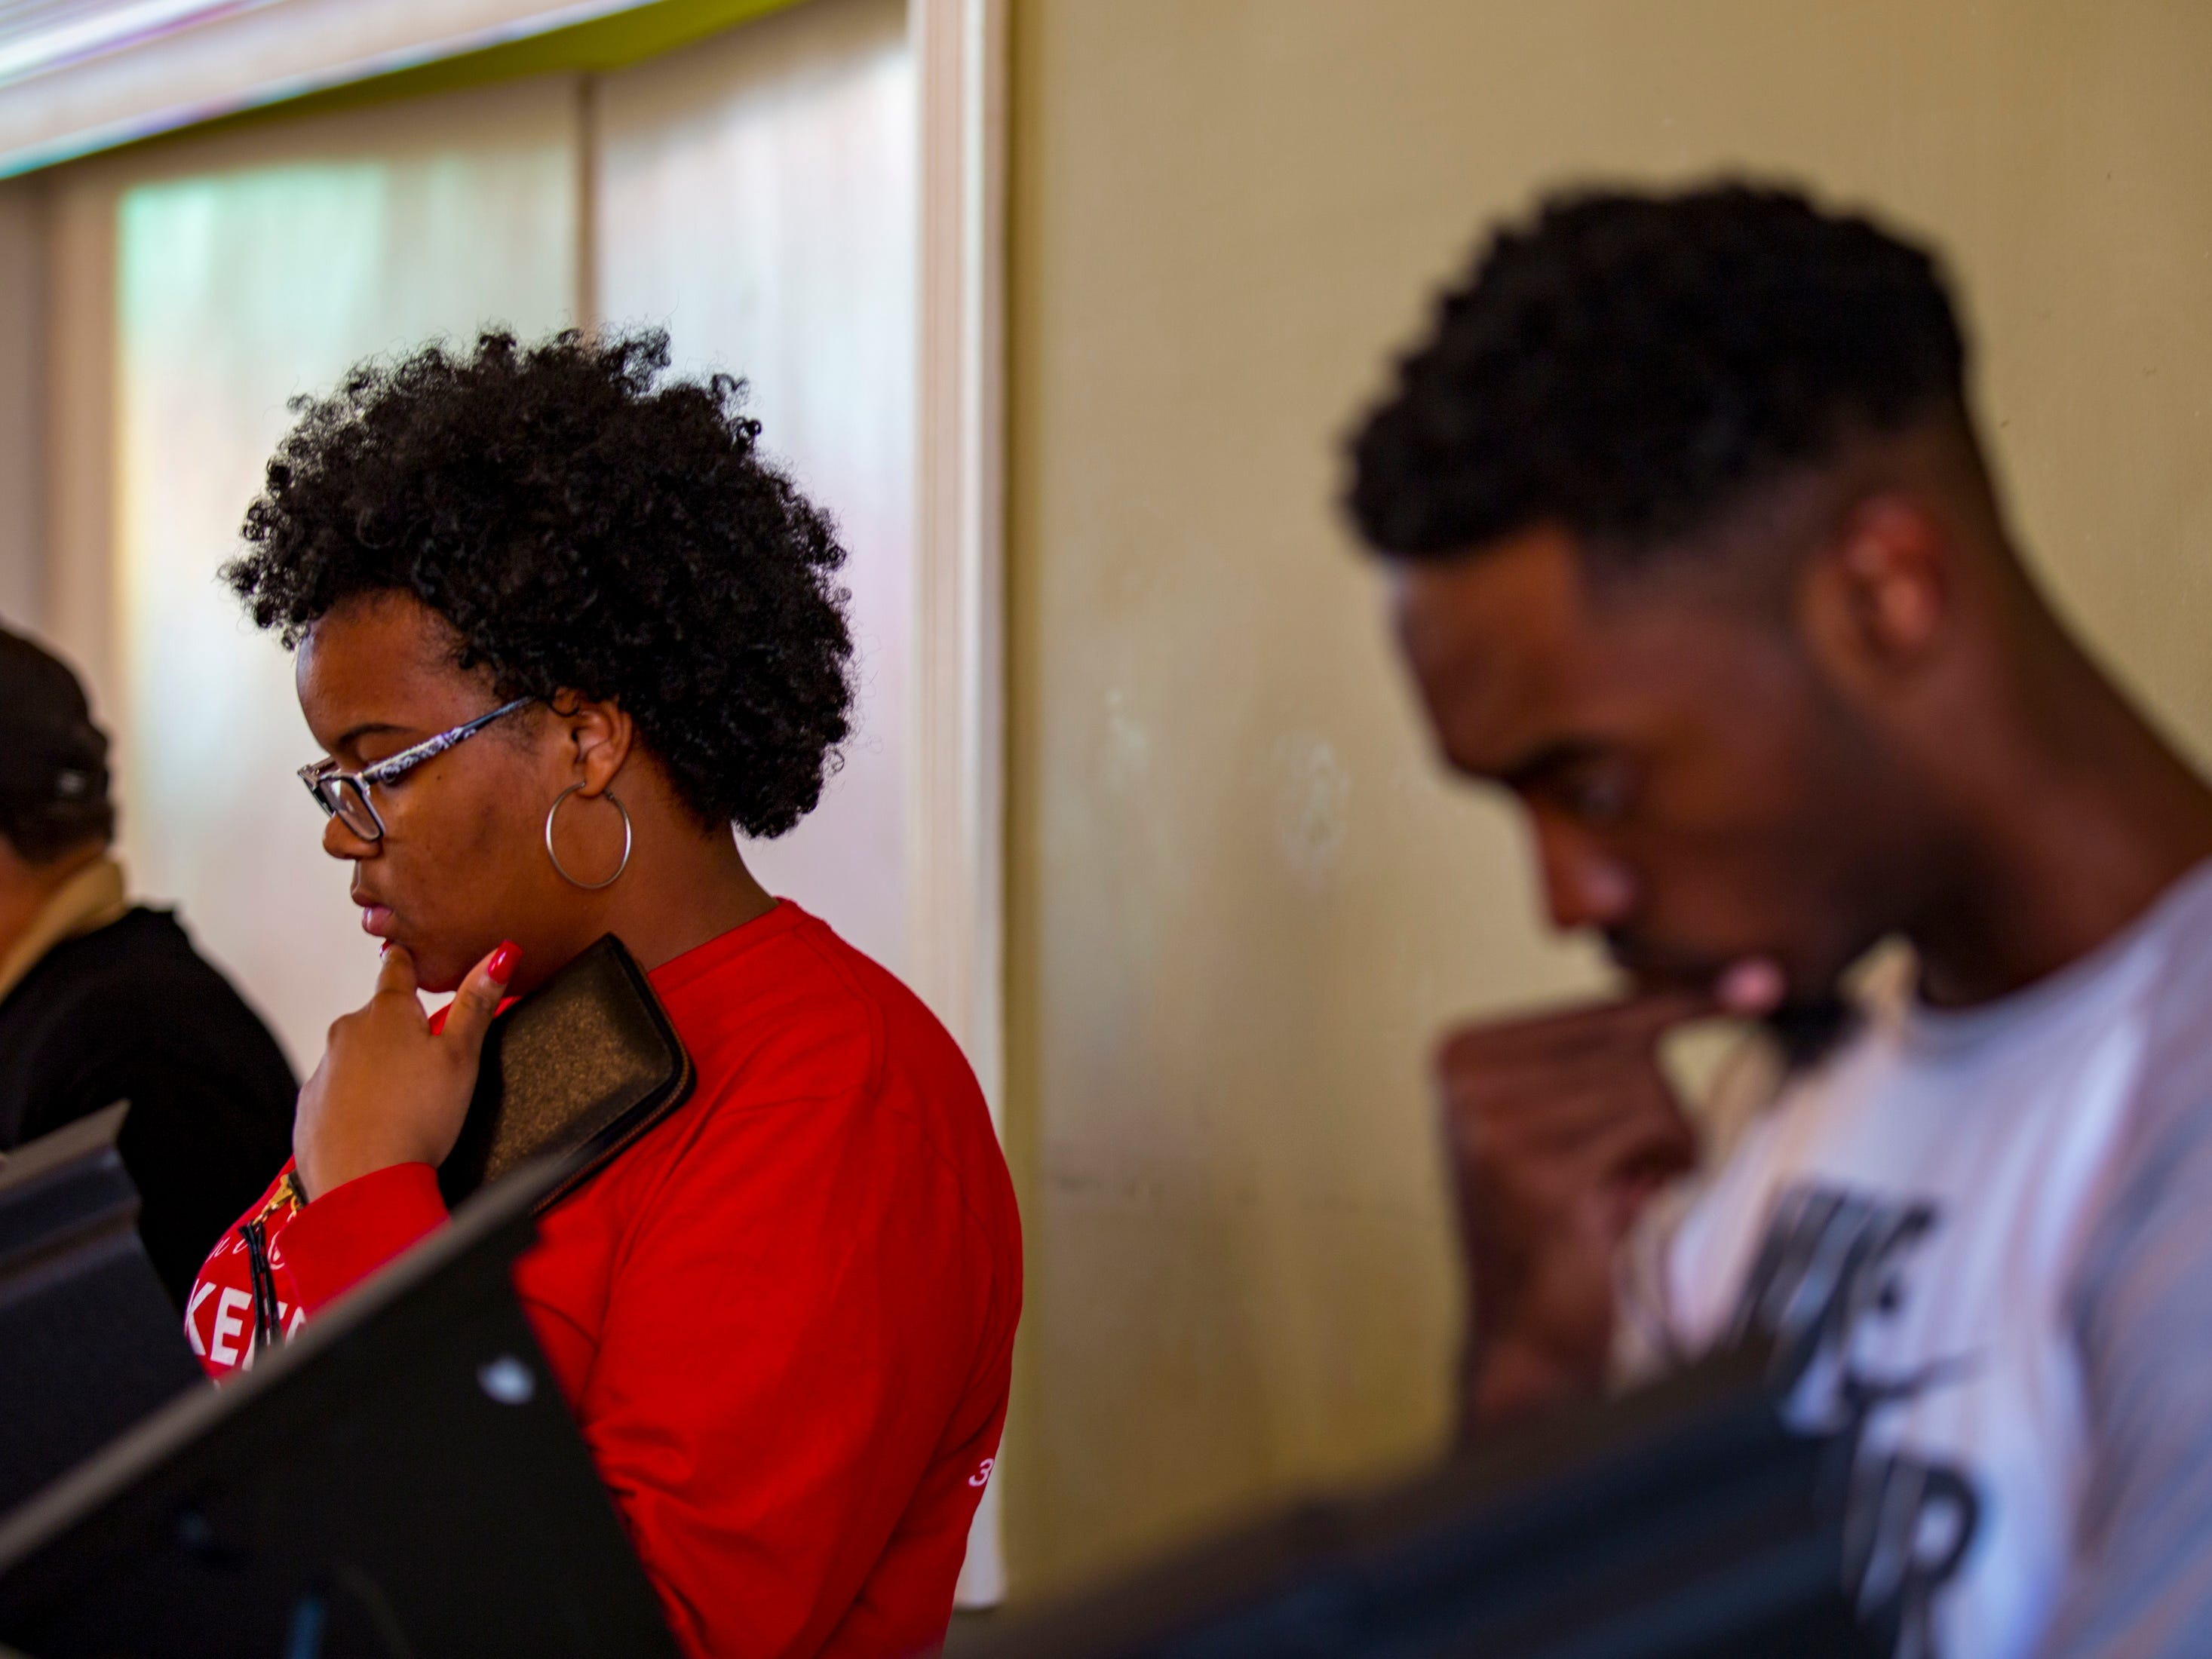 Desmond Parker, left, and Simeon Hall look over their ballots while voting at the Cathedral of Praise polling place in Nashville on Tuesday, Nov. 6, 2018.